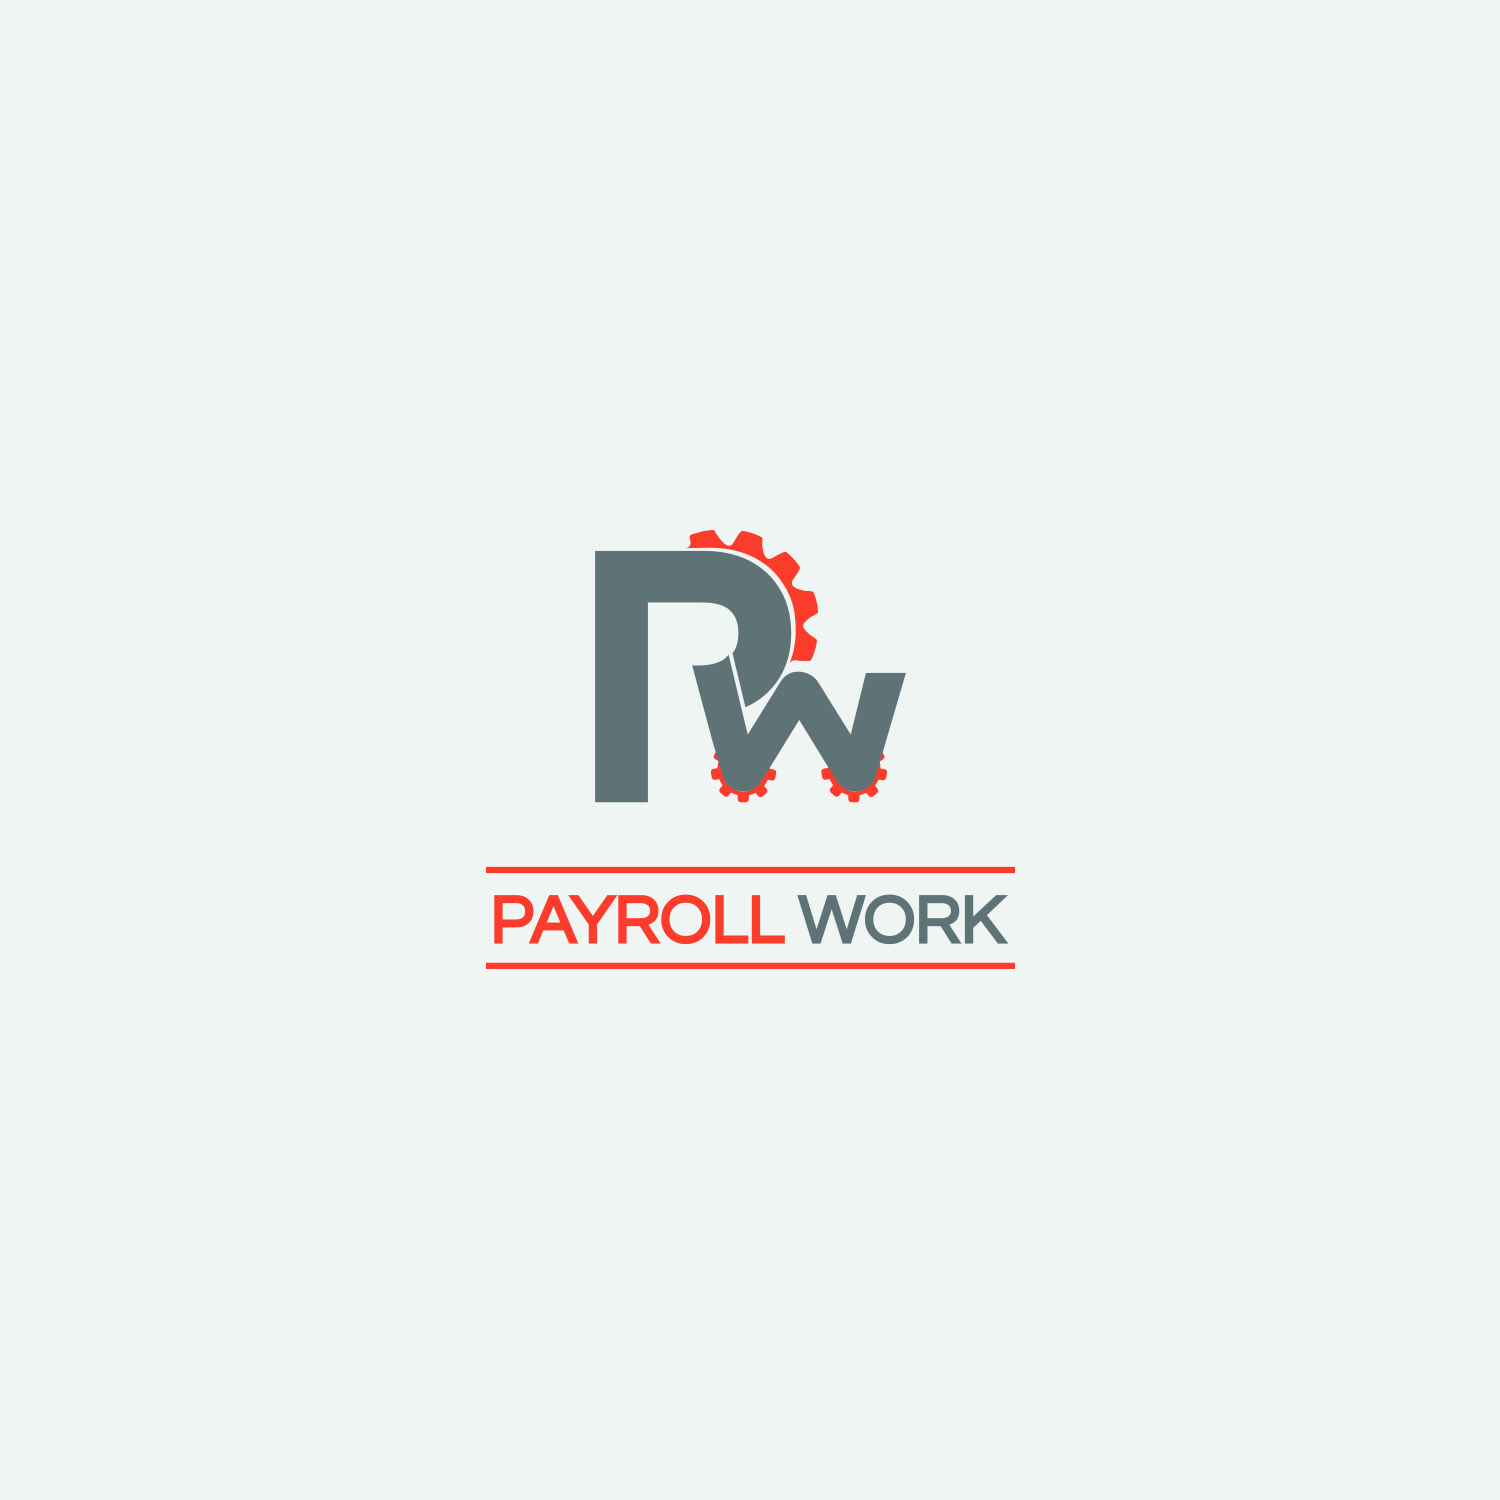 Logo Design by Umair ahmed Iqbal - Entry No. 64 in the Logo Design Contest Captivating Logo Design for The Payroll Works.